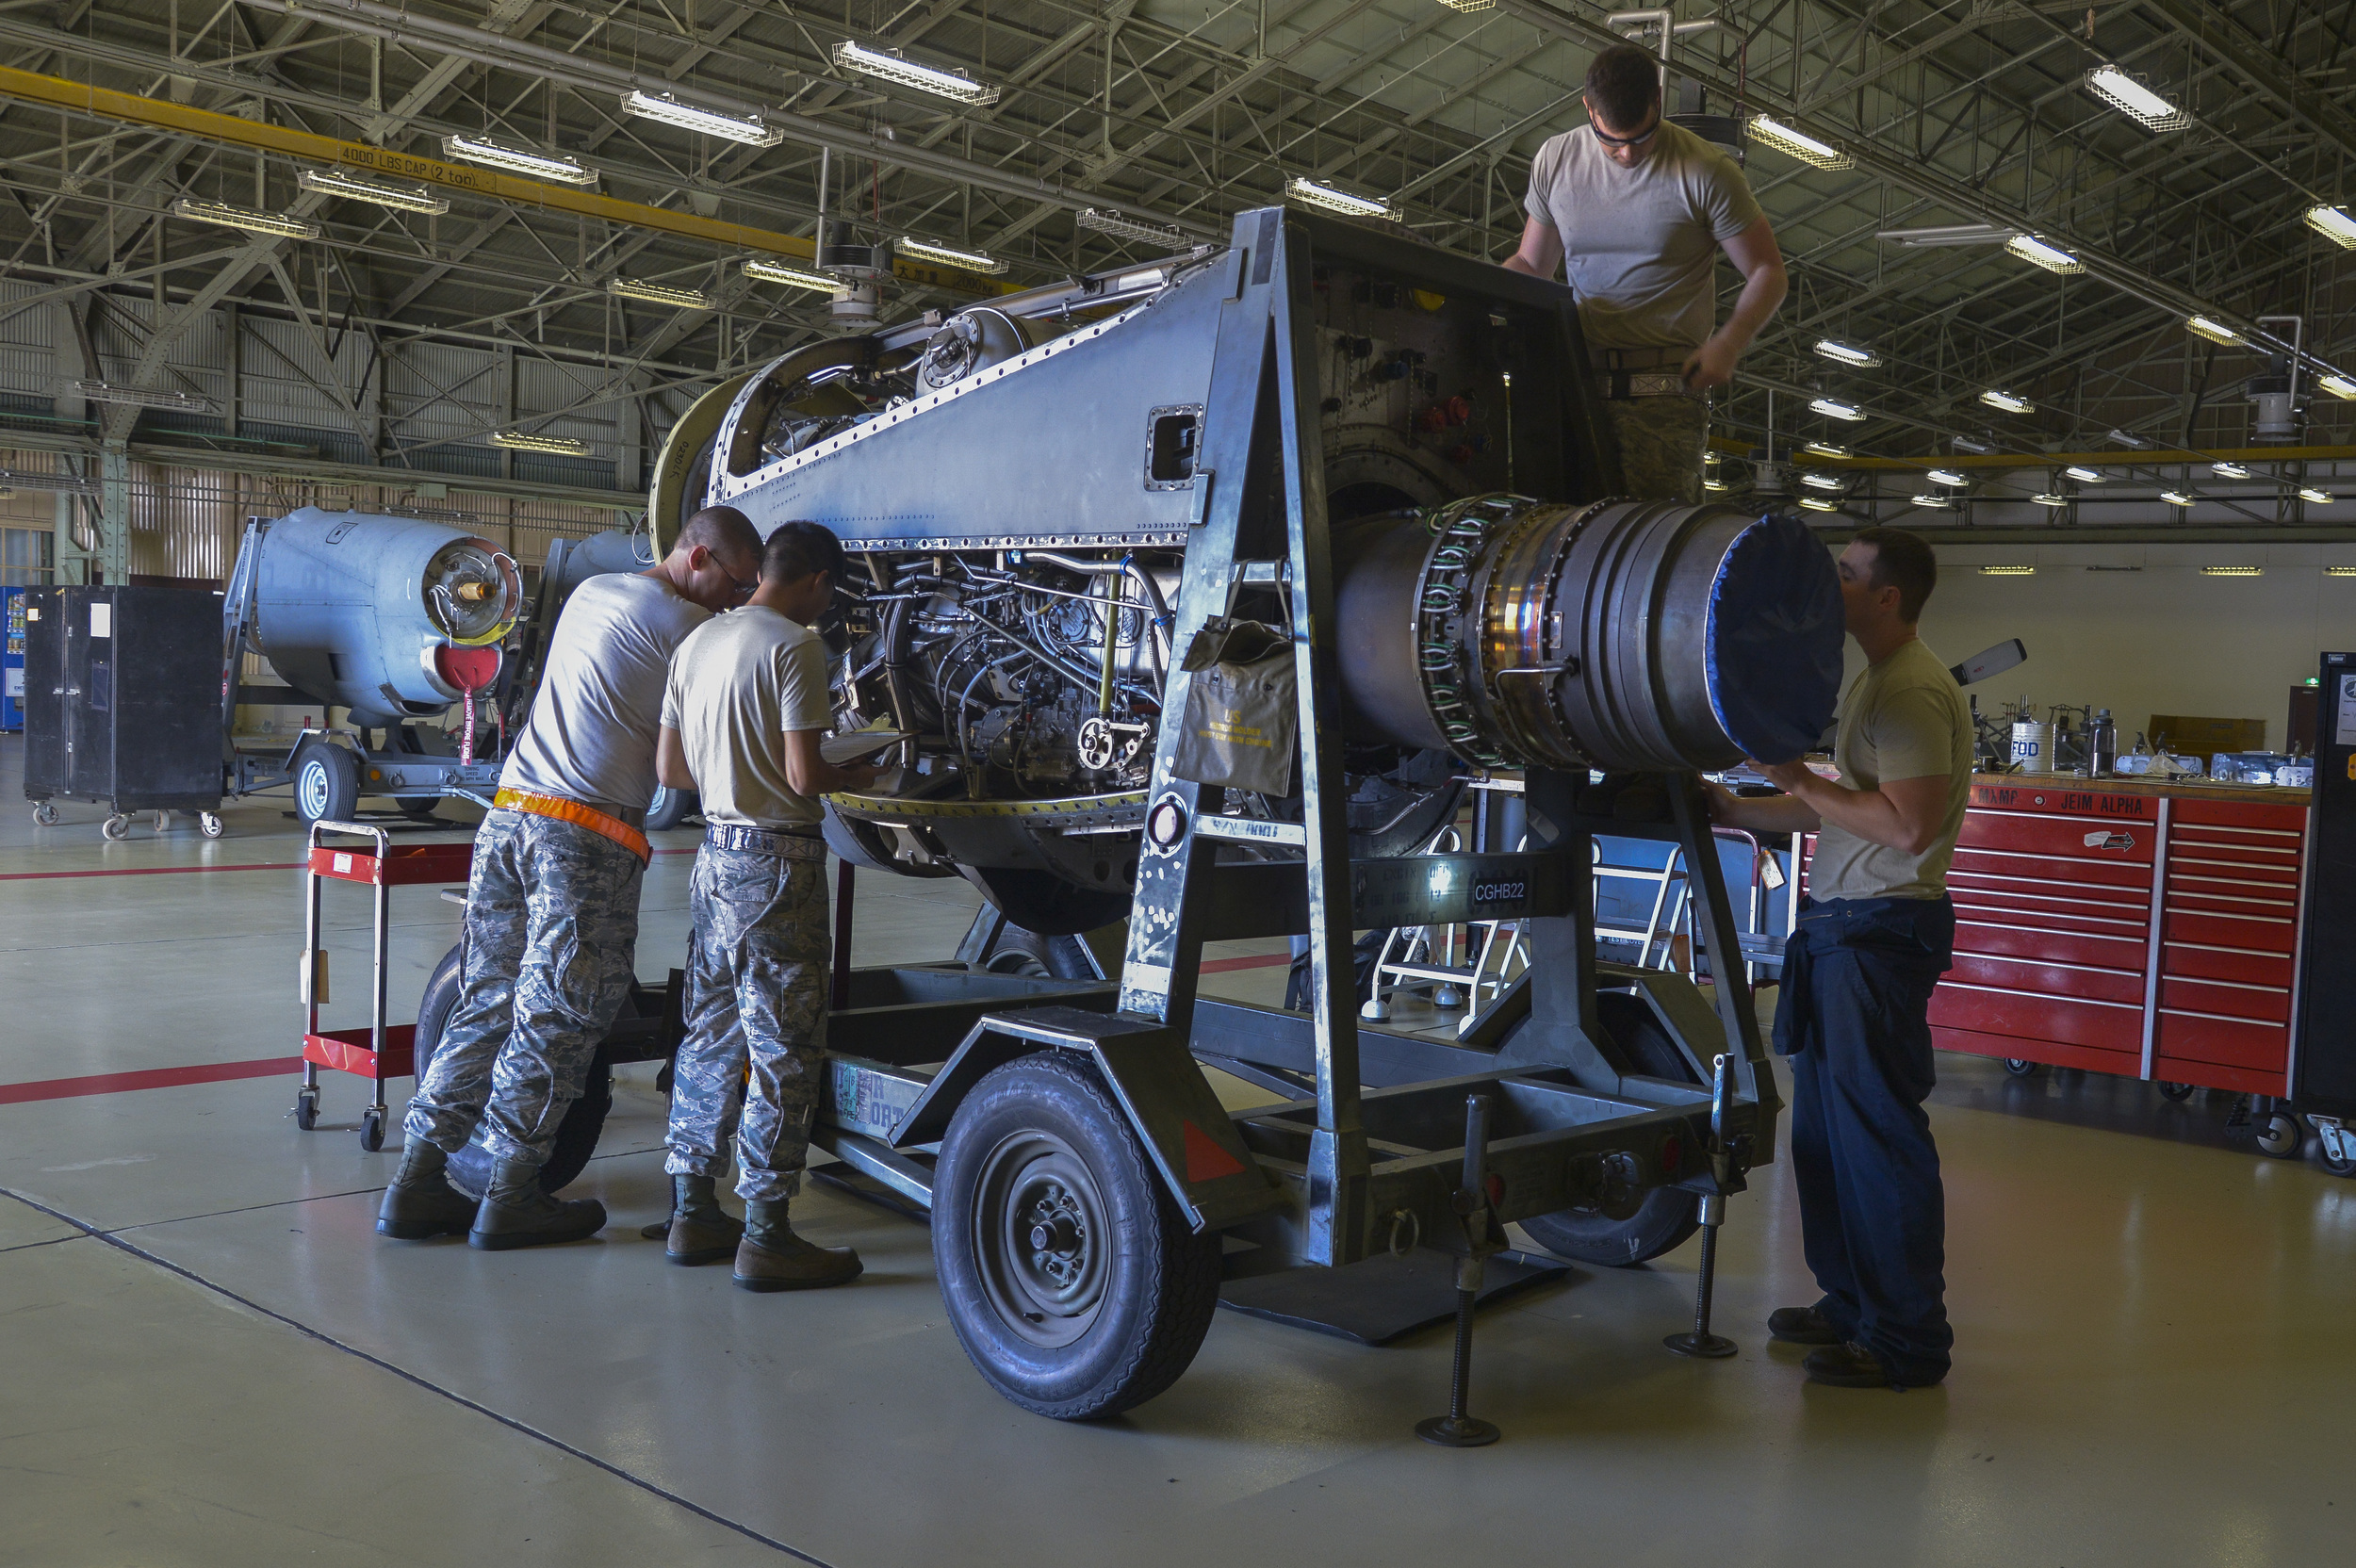 Airmen with the 374th Maintenance Squadron propulsion flight inspect an engine prior to going through an operational check in the test cell at Yokota Air Base, Japan, Sept. 23, 2015. The jet engine intermediate maintenance section performs routine maintenance work on the engines and rebuilds them when necessary. (U.S. Air Force photo by Senior Airman David Owsianka/Released)